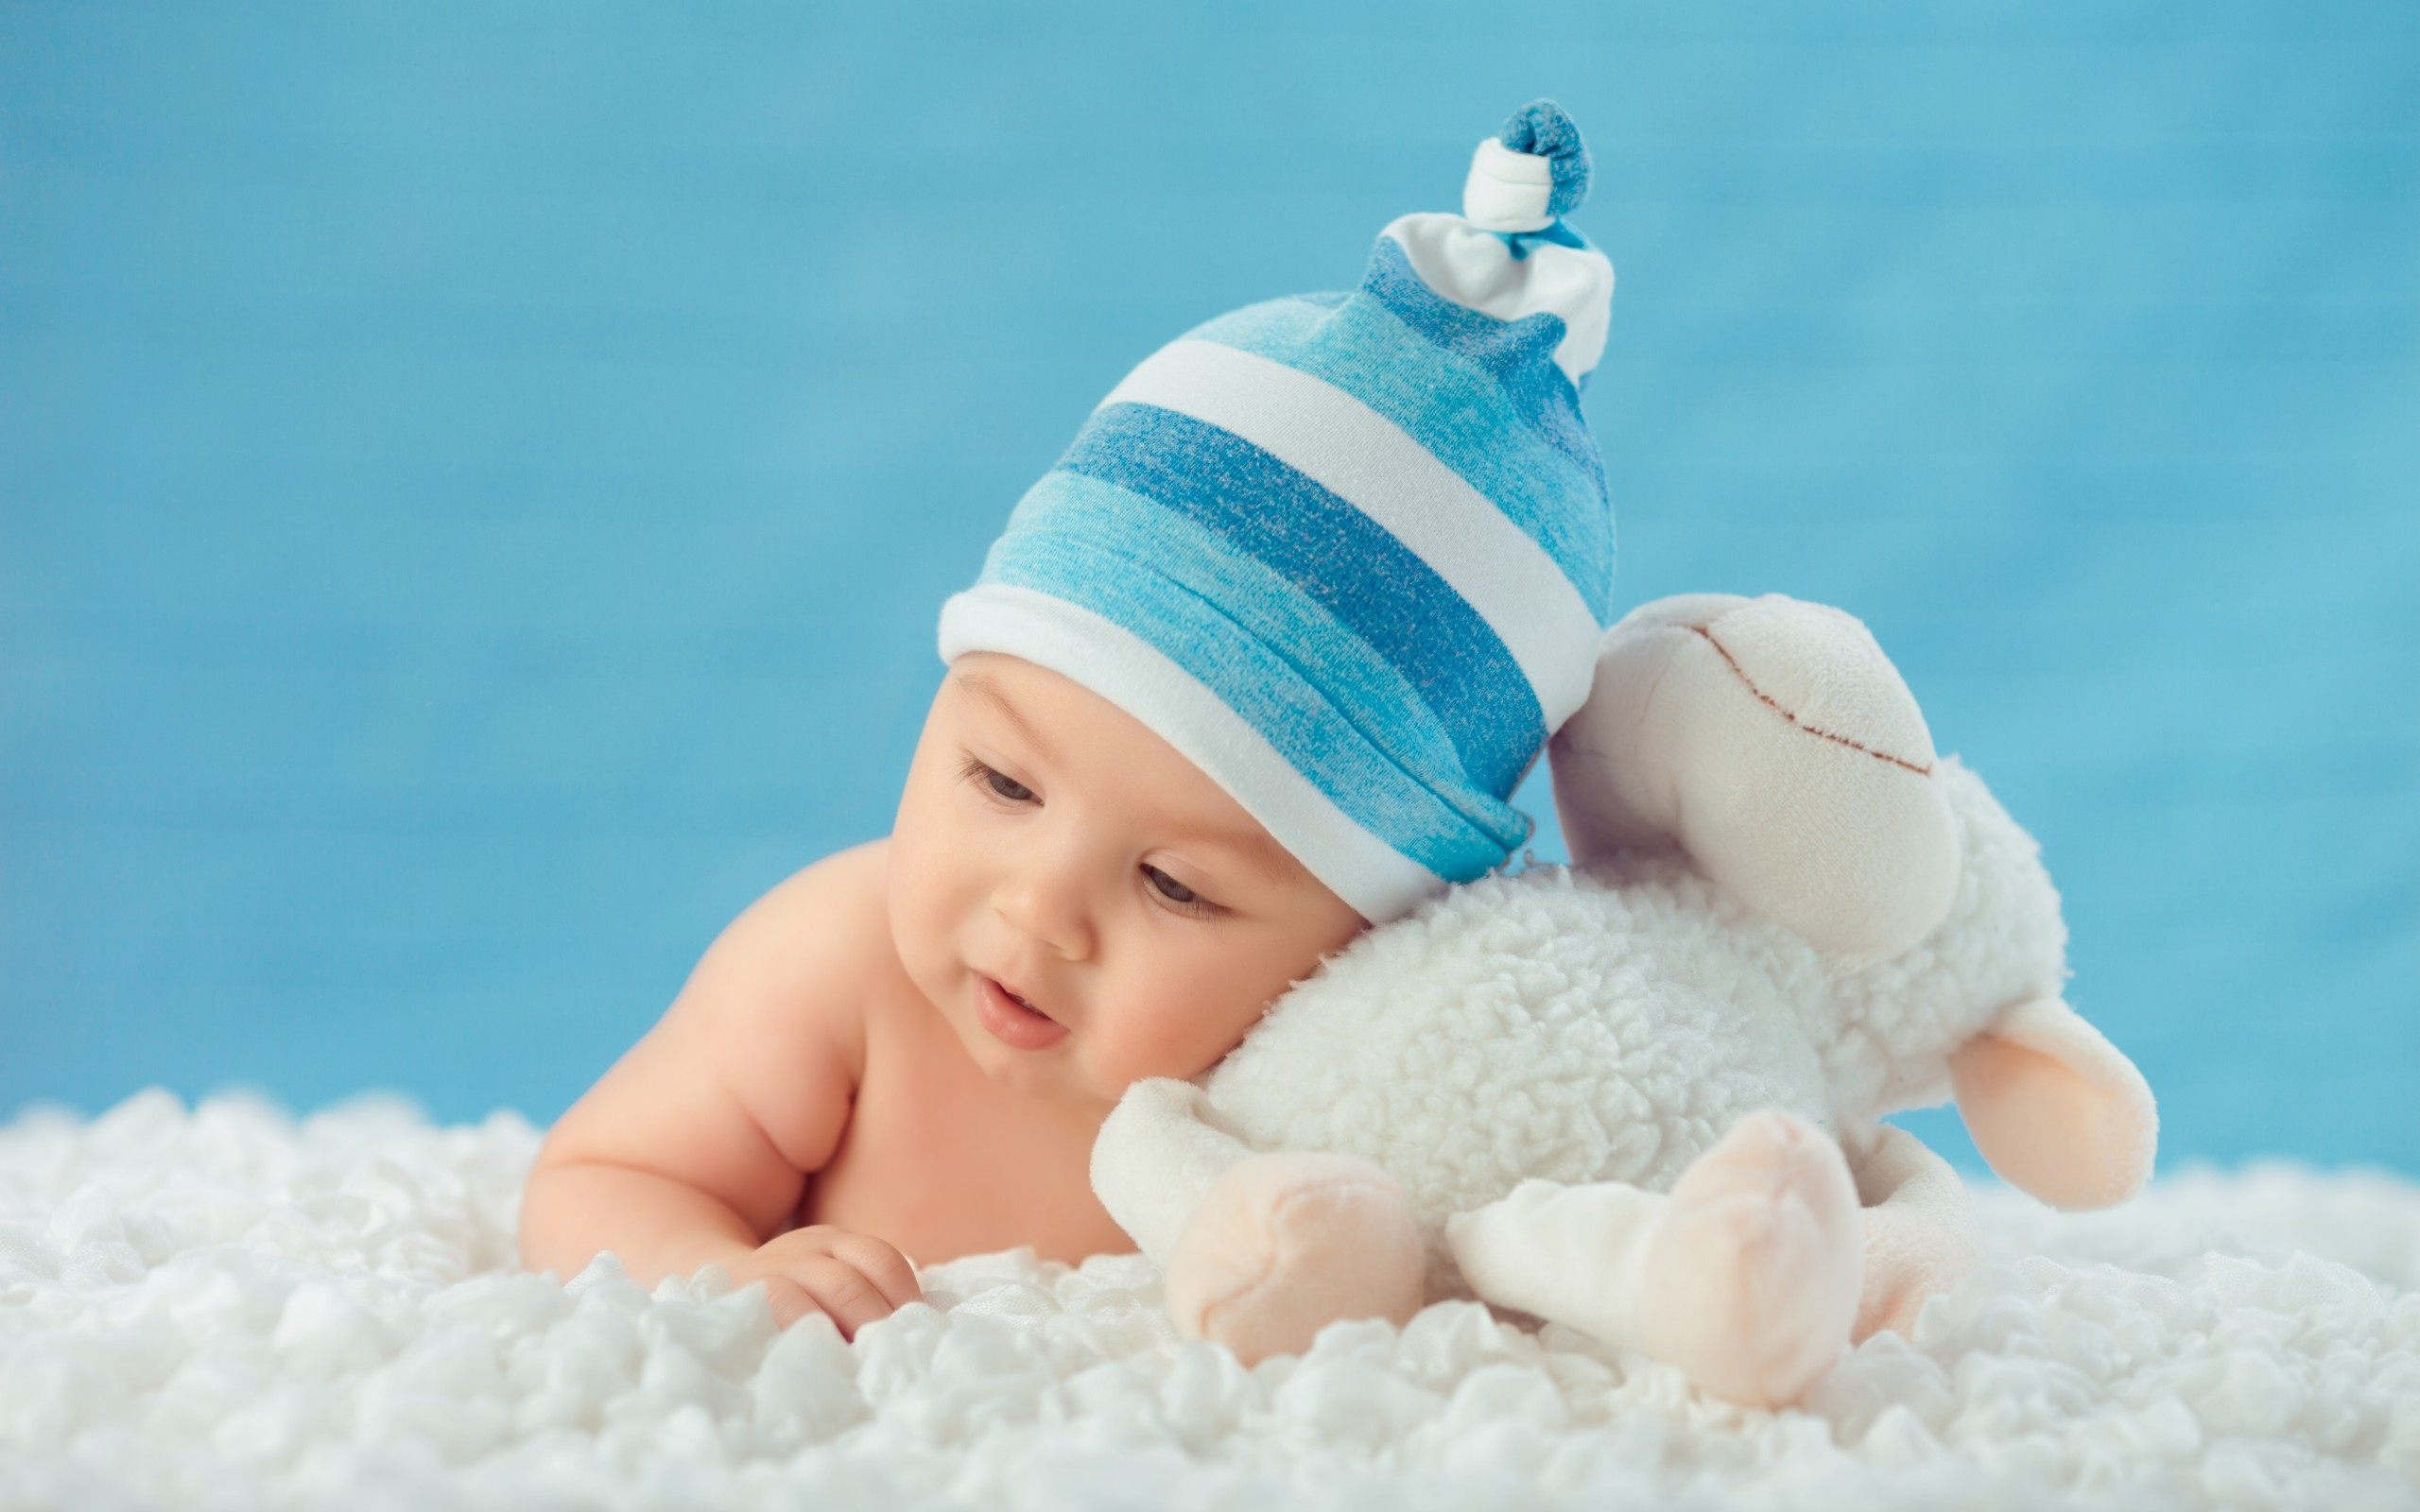 Biggest Collection Of HD Baby Wallpaper For Desktop And Mobile 2560x1600